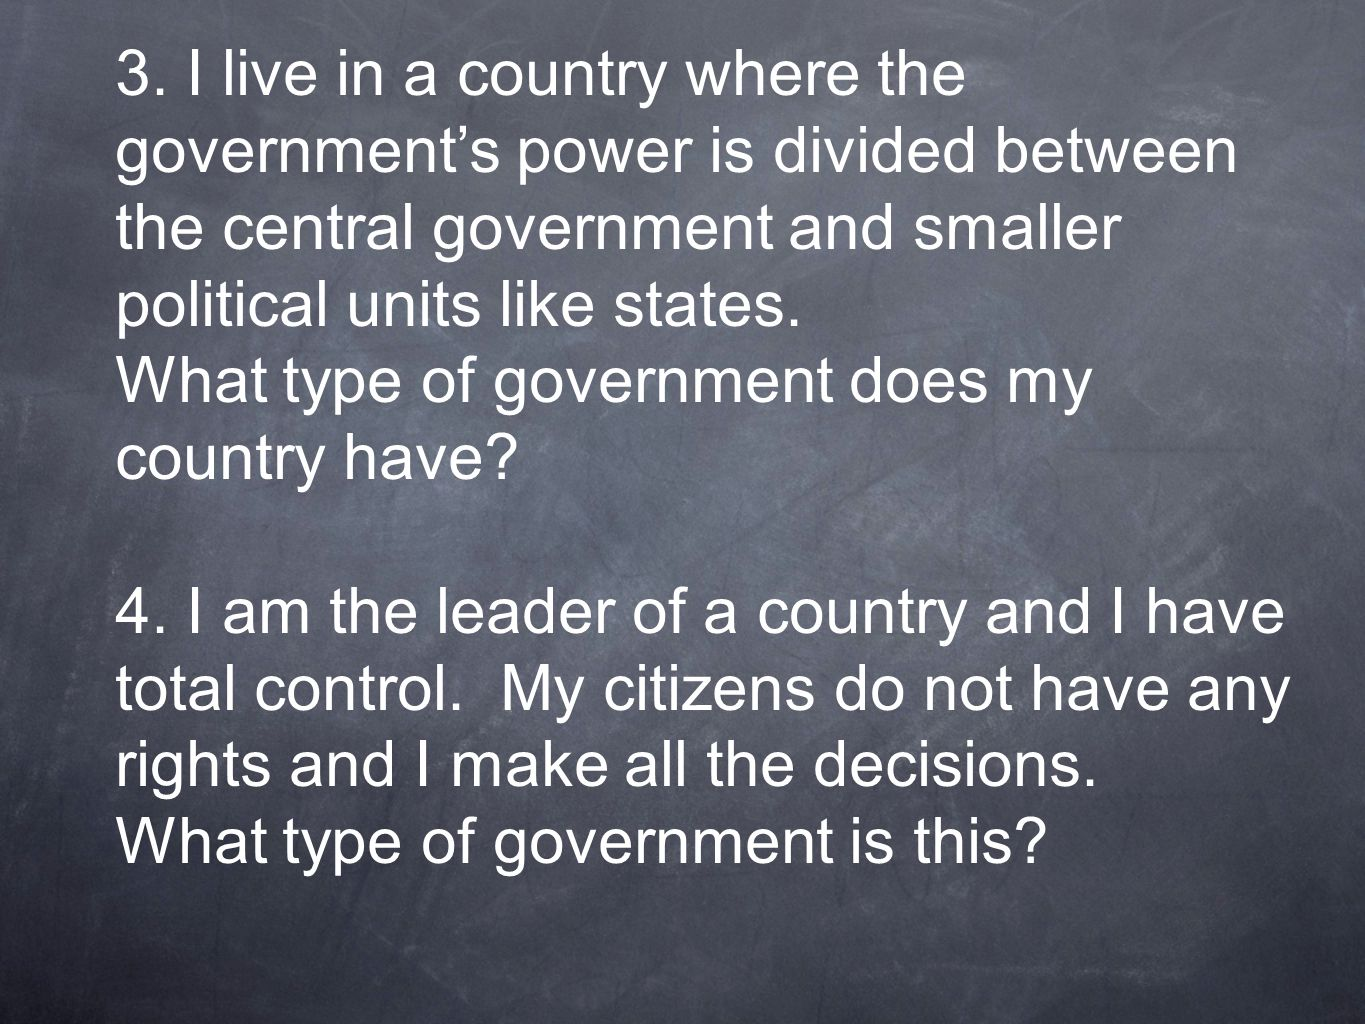 3. I live in a country where the government's power is divided between the central government and smaller political units like states.